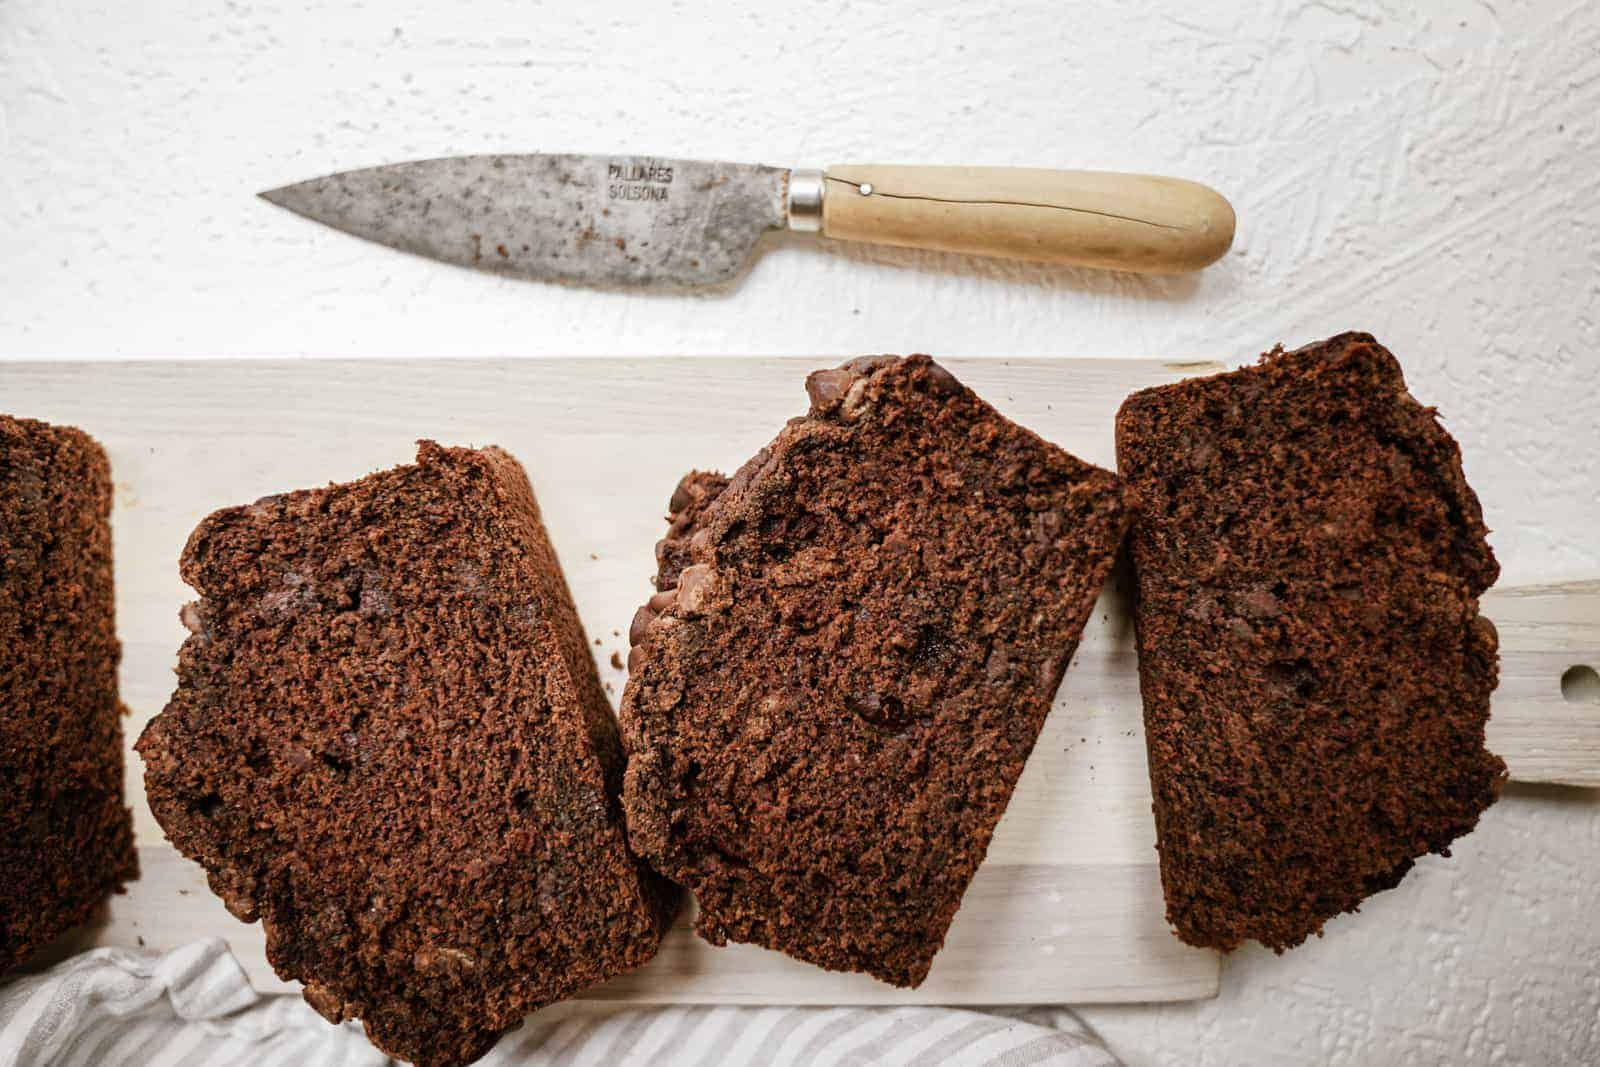 Slices of chocolate banana bread on cutting board